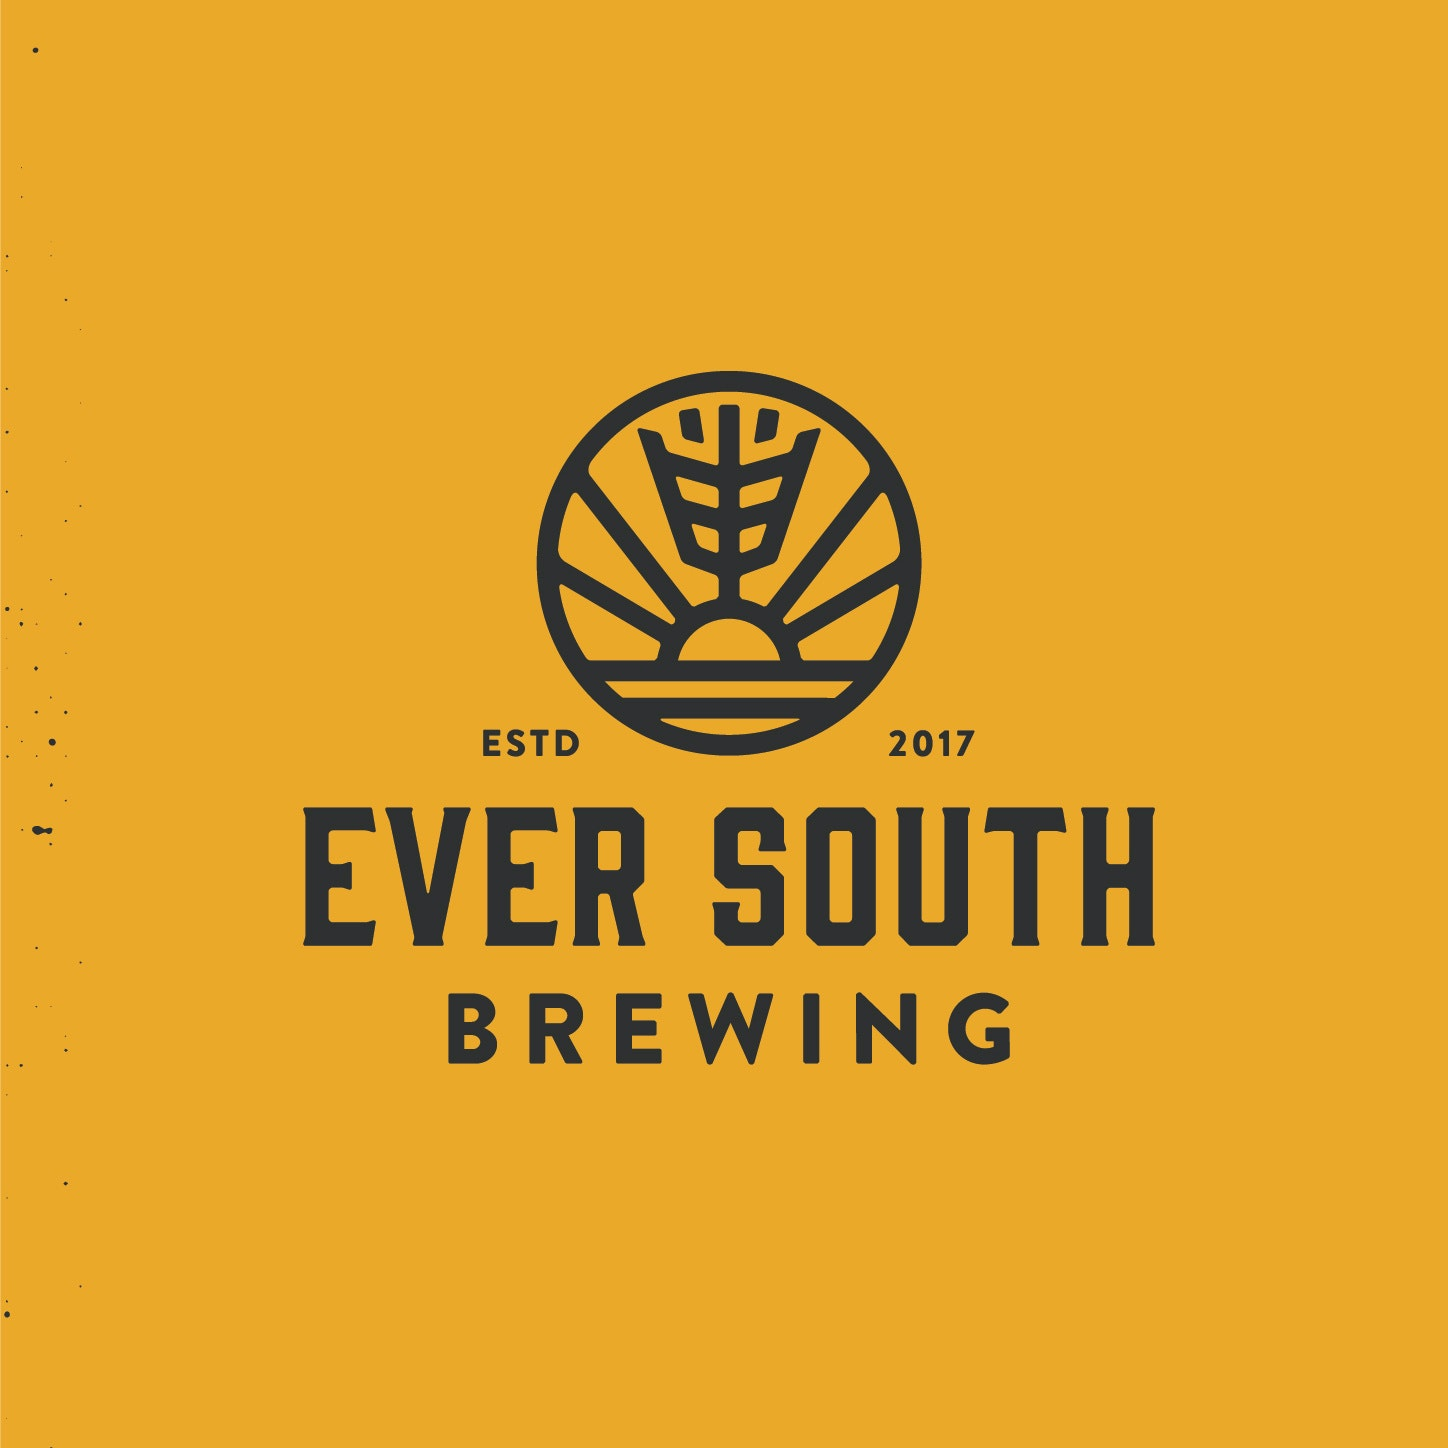 Ever South brewing logo design